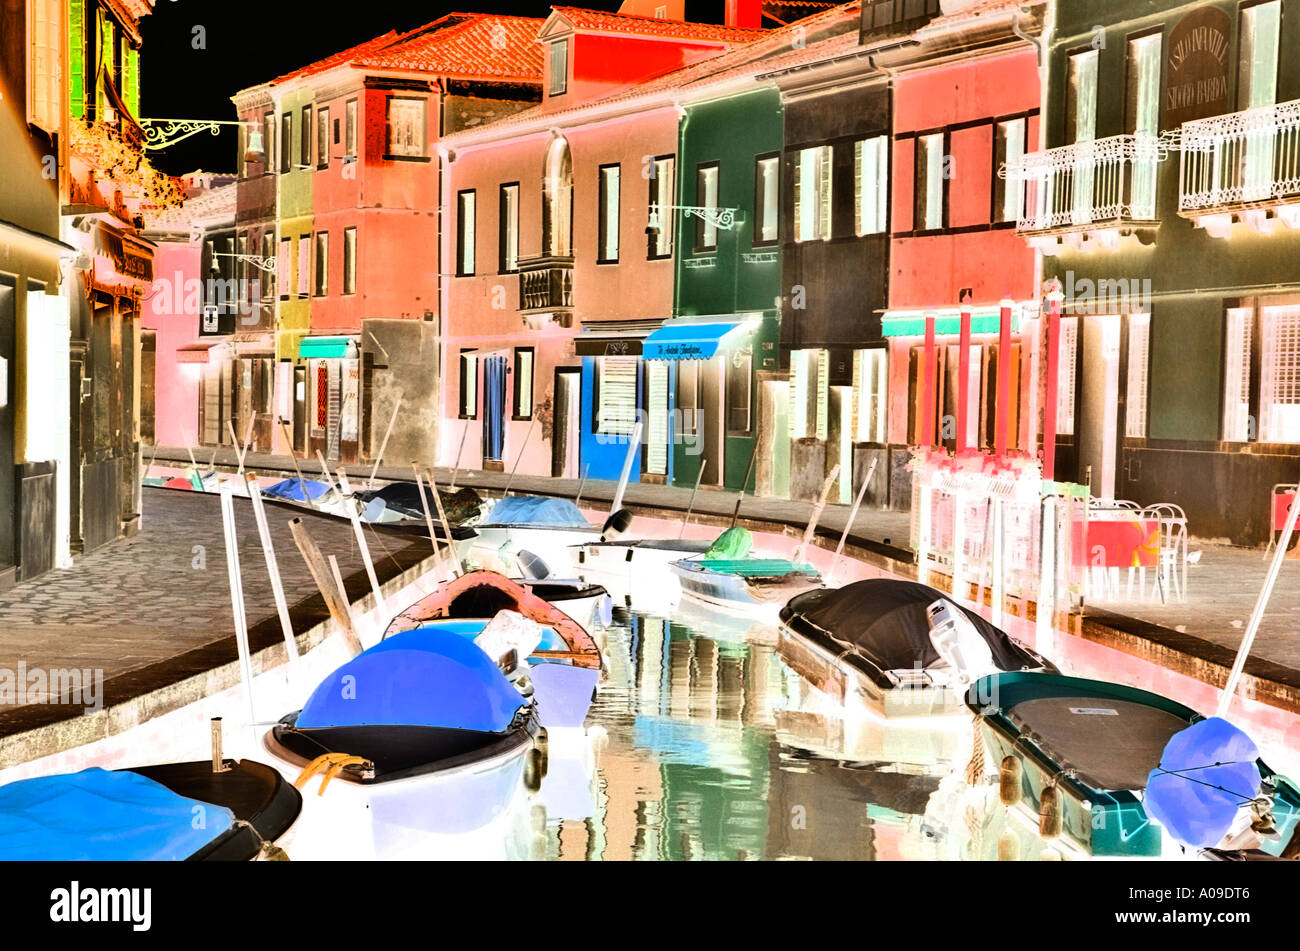 Colorful burano italy burano tourism - Stock Photo Colorful Houses And Boats Line The Canals Of Burano Near Venice In Italy Inverted Daytime Image